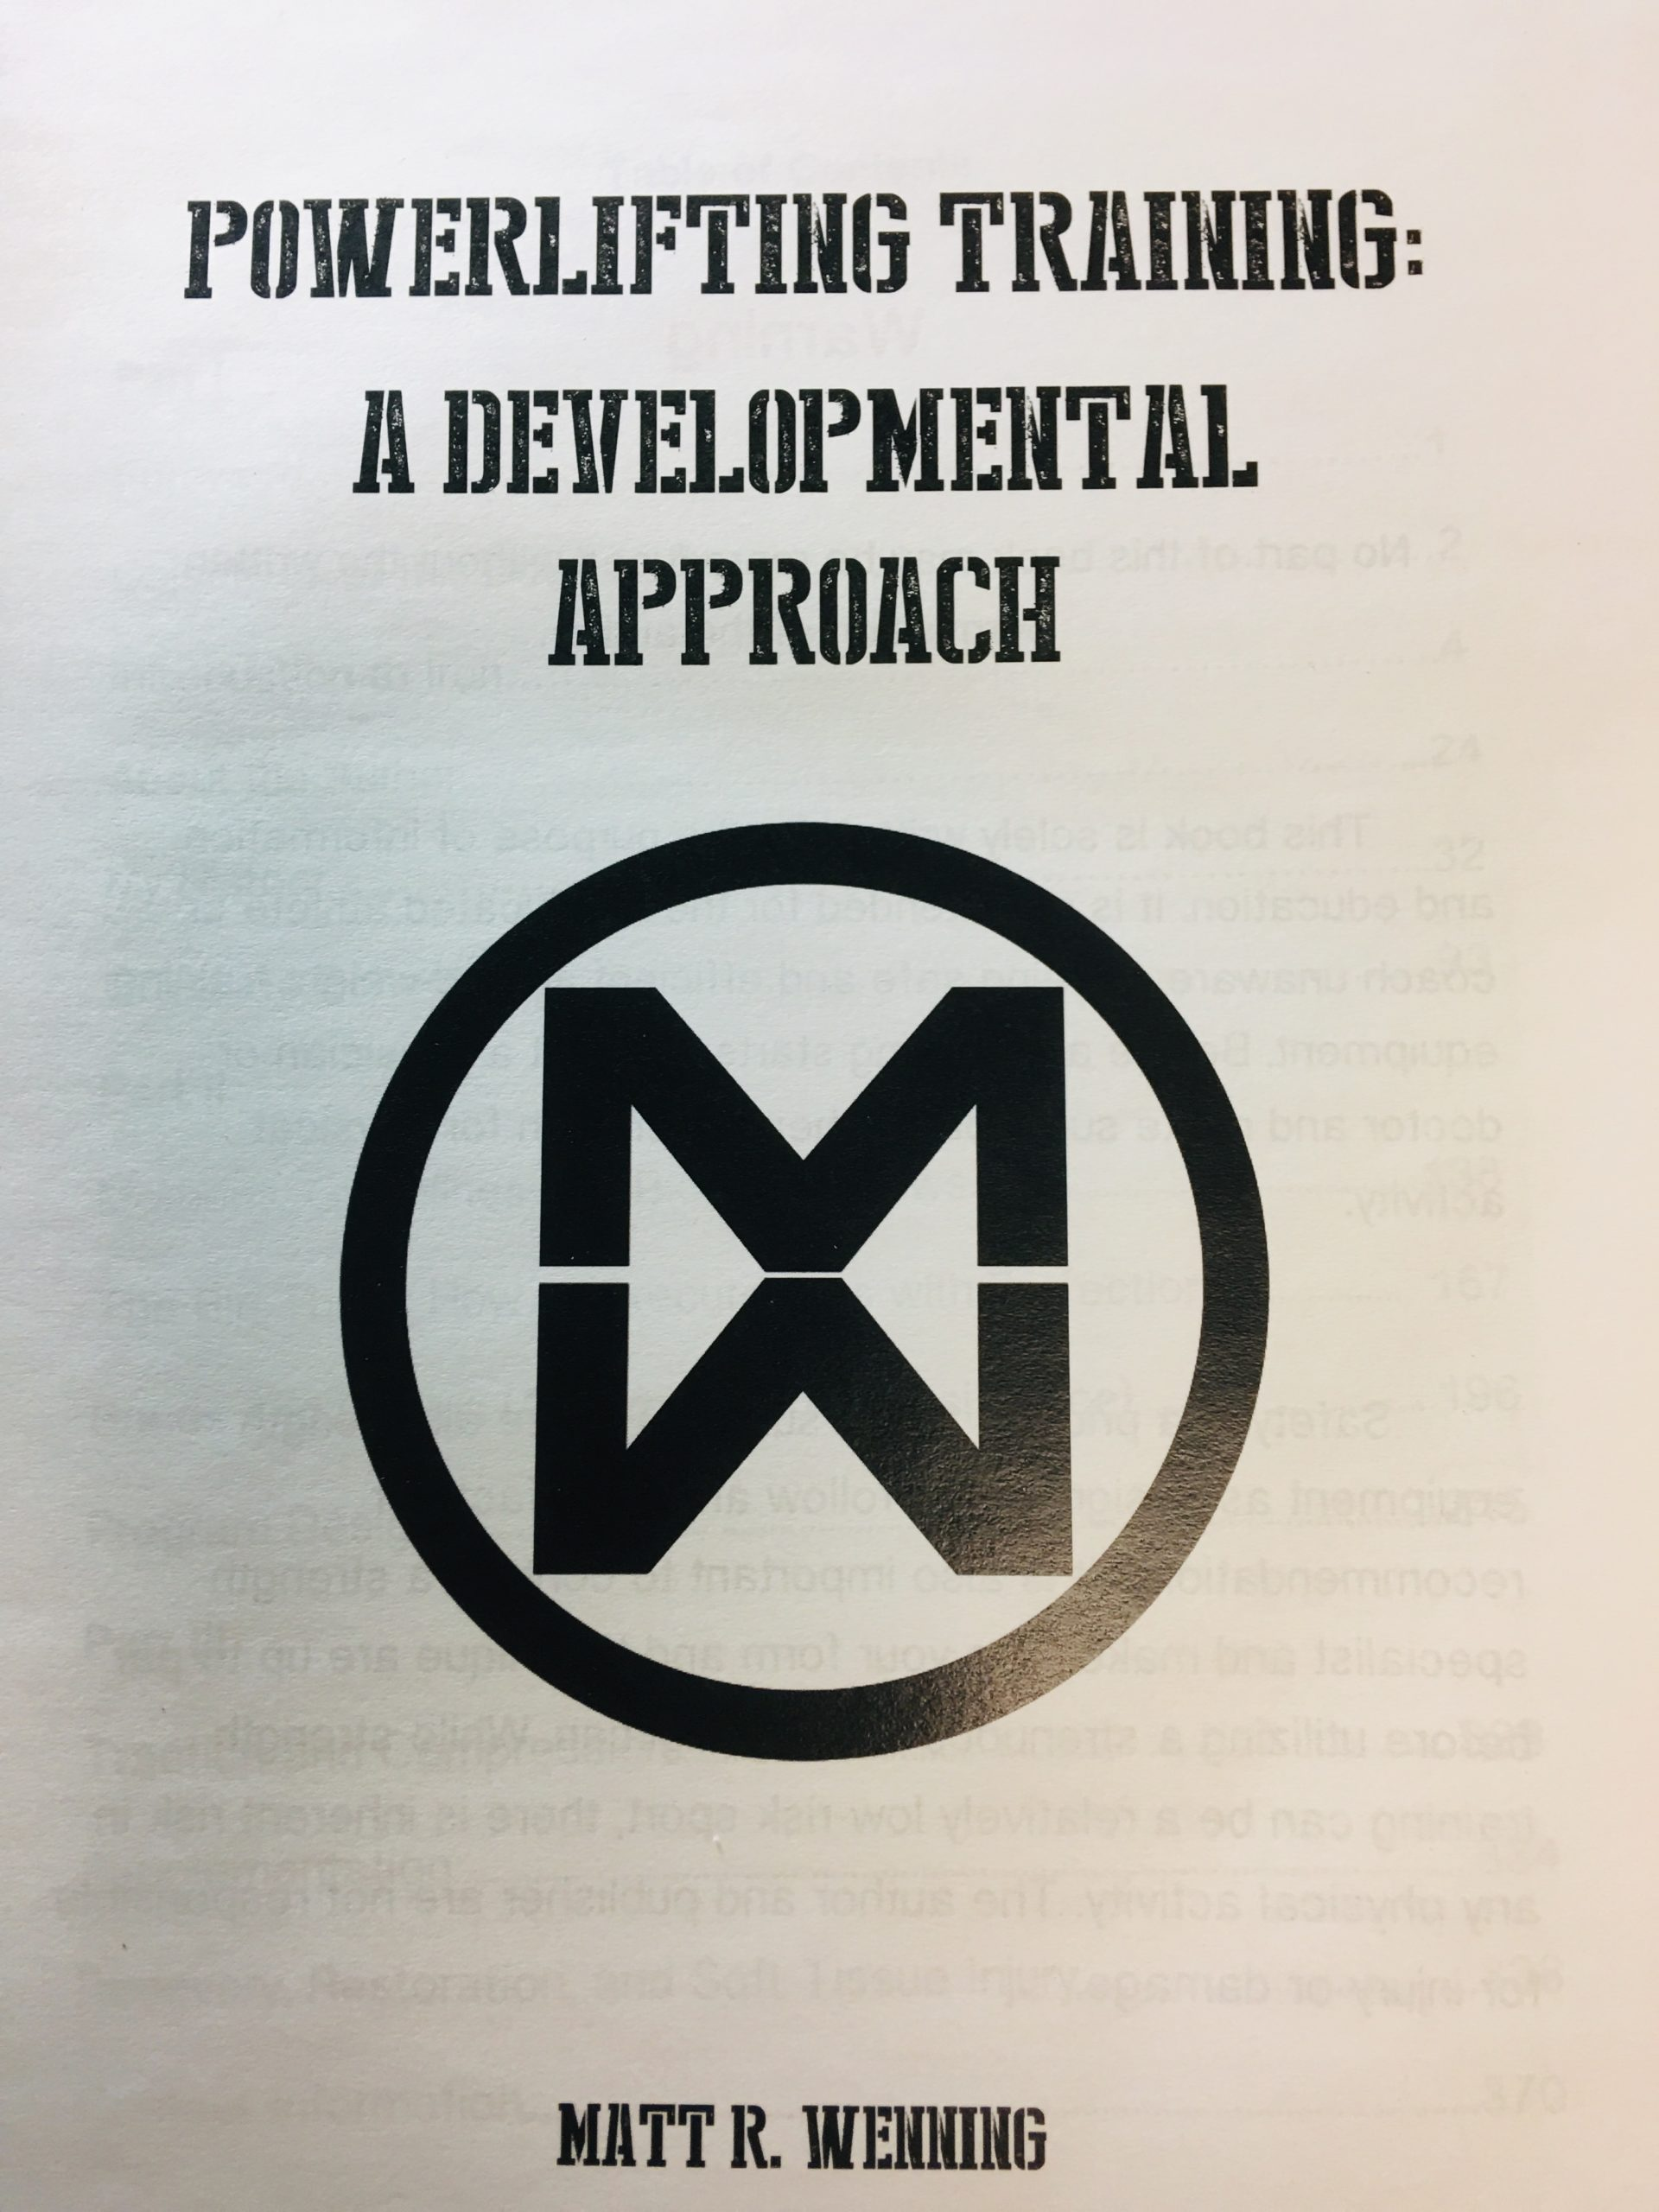 Book Review-Matt Wenning's POWERLIFTING TRAINING A Developmental Approach